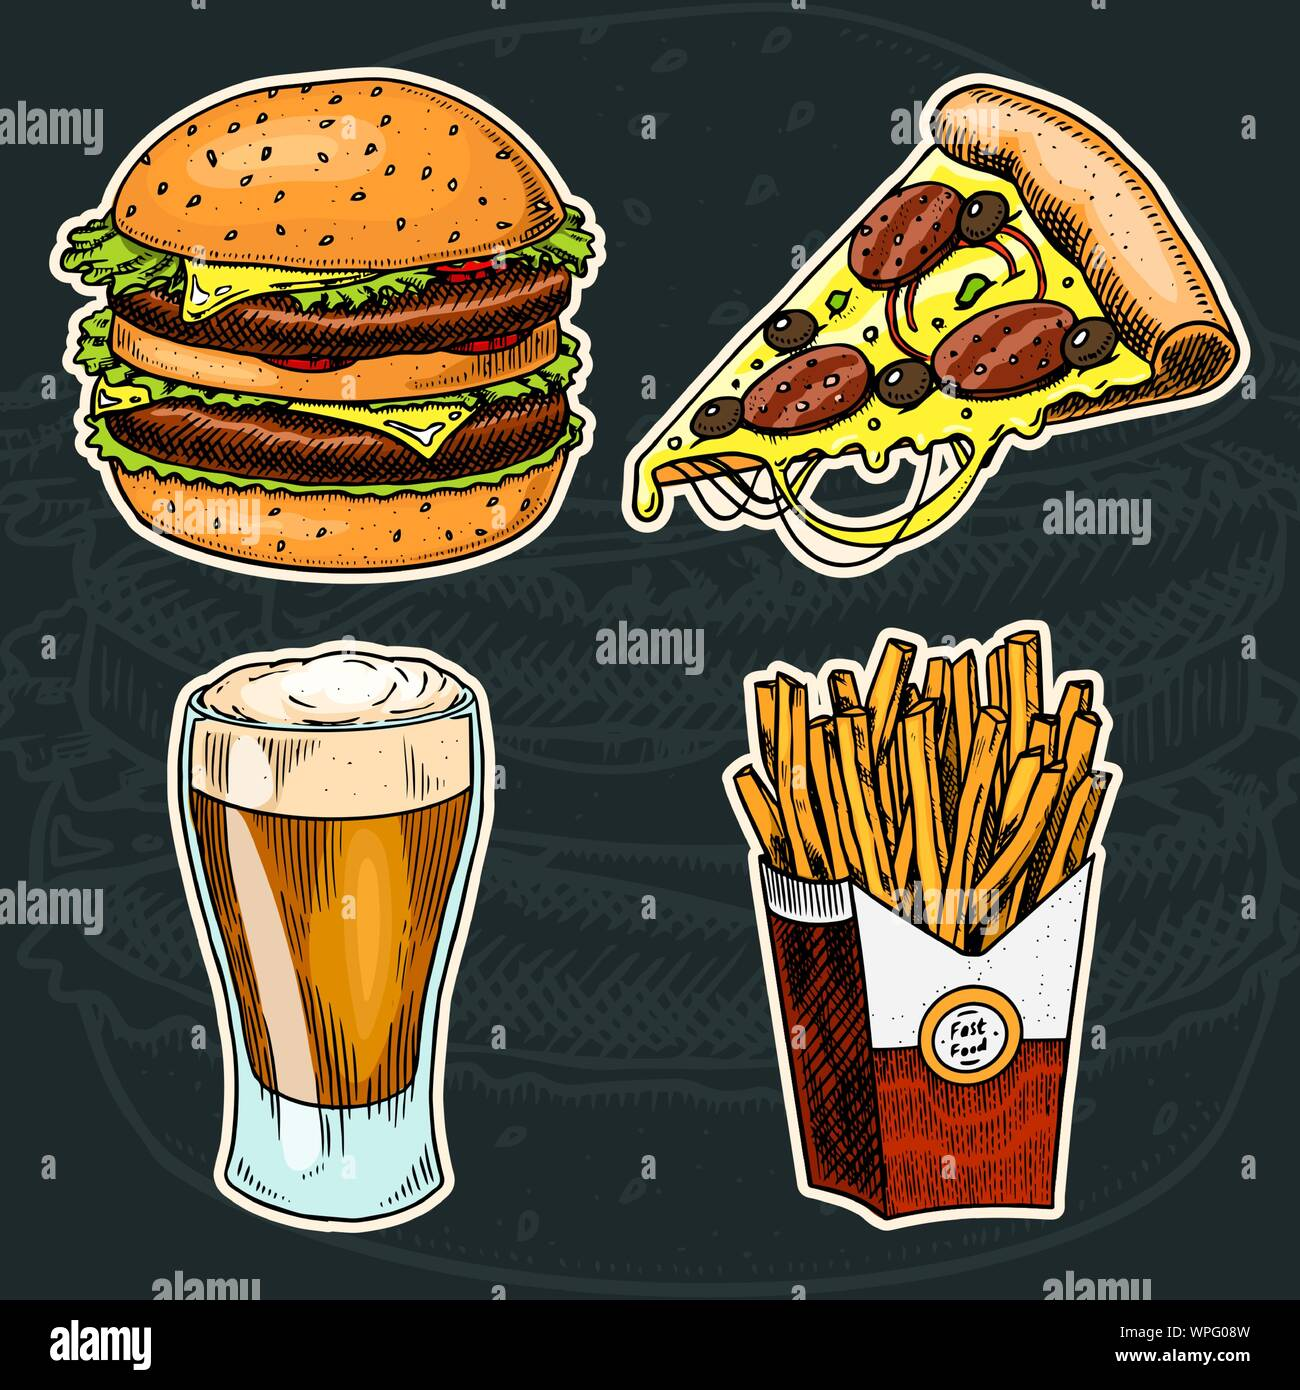 Junk Fast Food Burger And Pizza Beer And French Fries On A Black Background Vintage Sketch For Restaurant Menu Hand Drawn Stickers In Retro Style Stock Vector Image Art Alamy